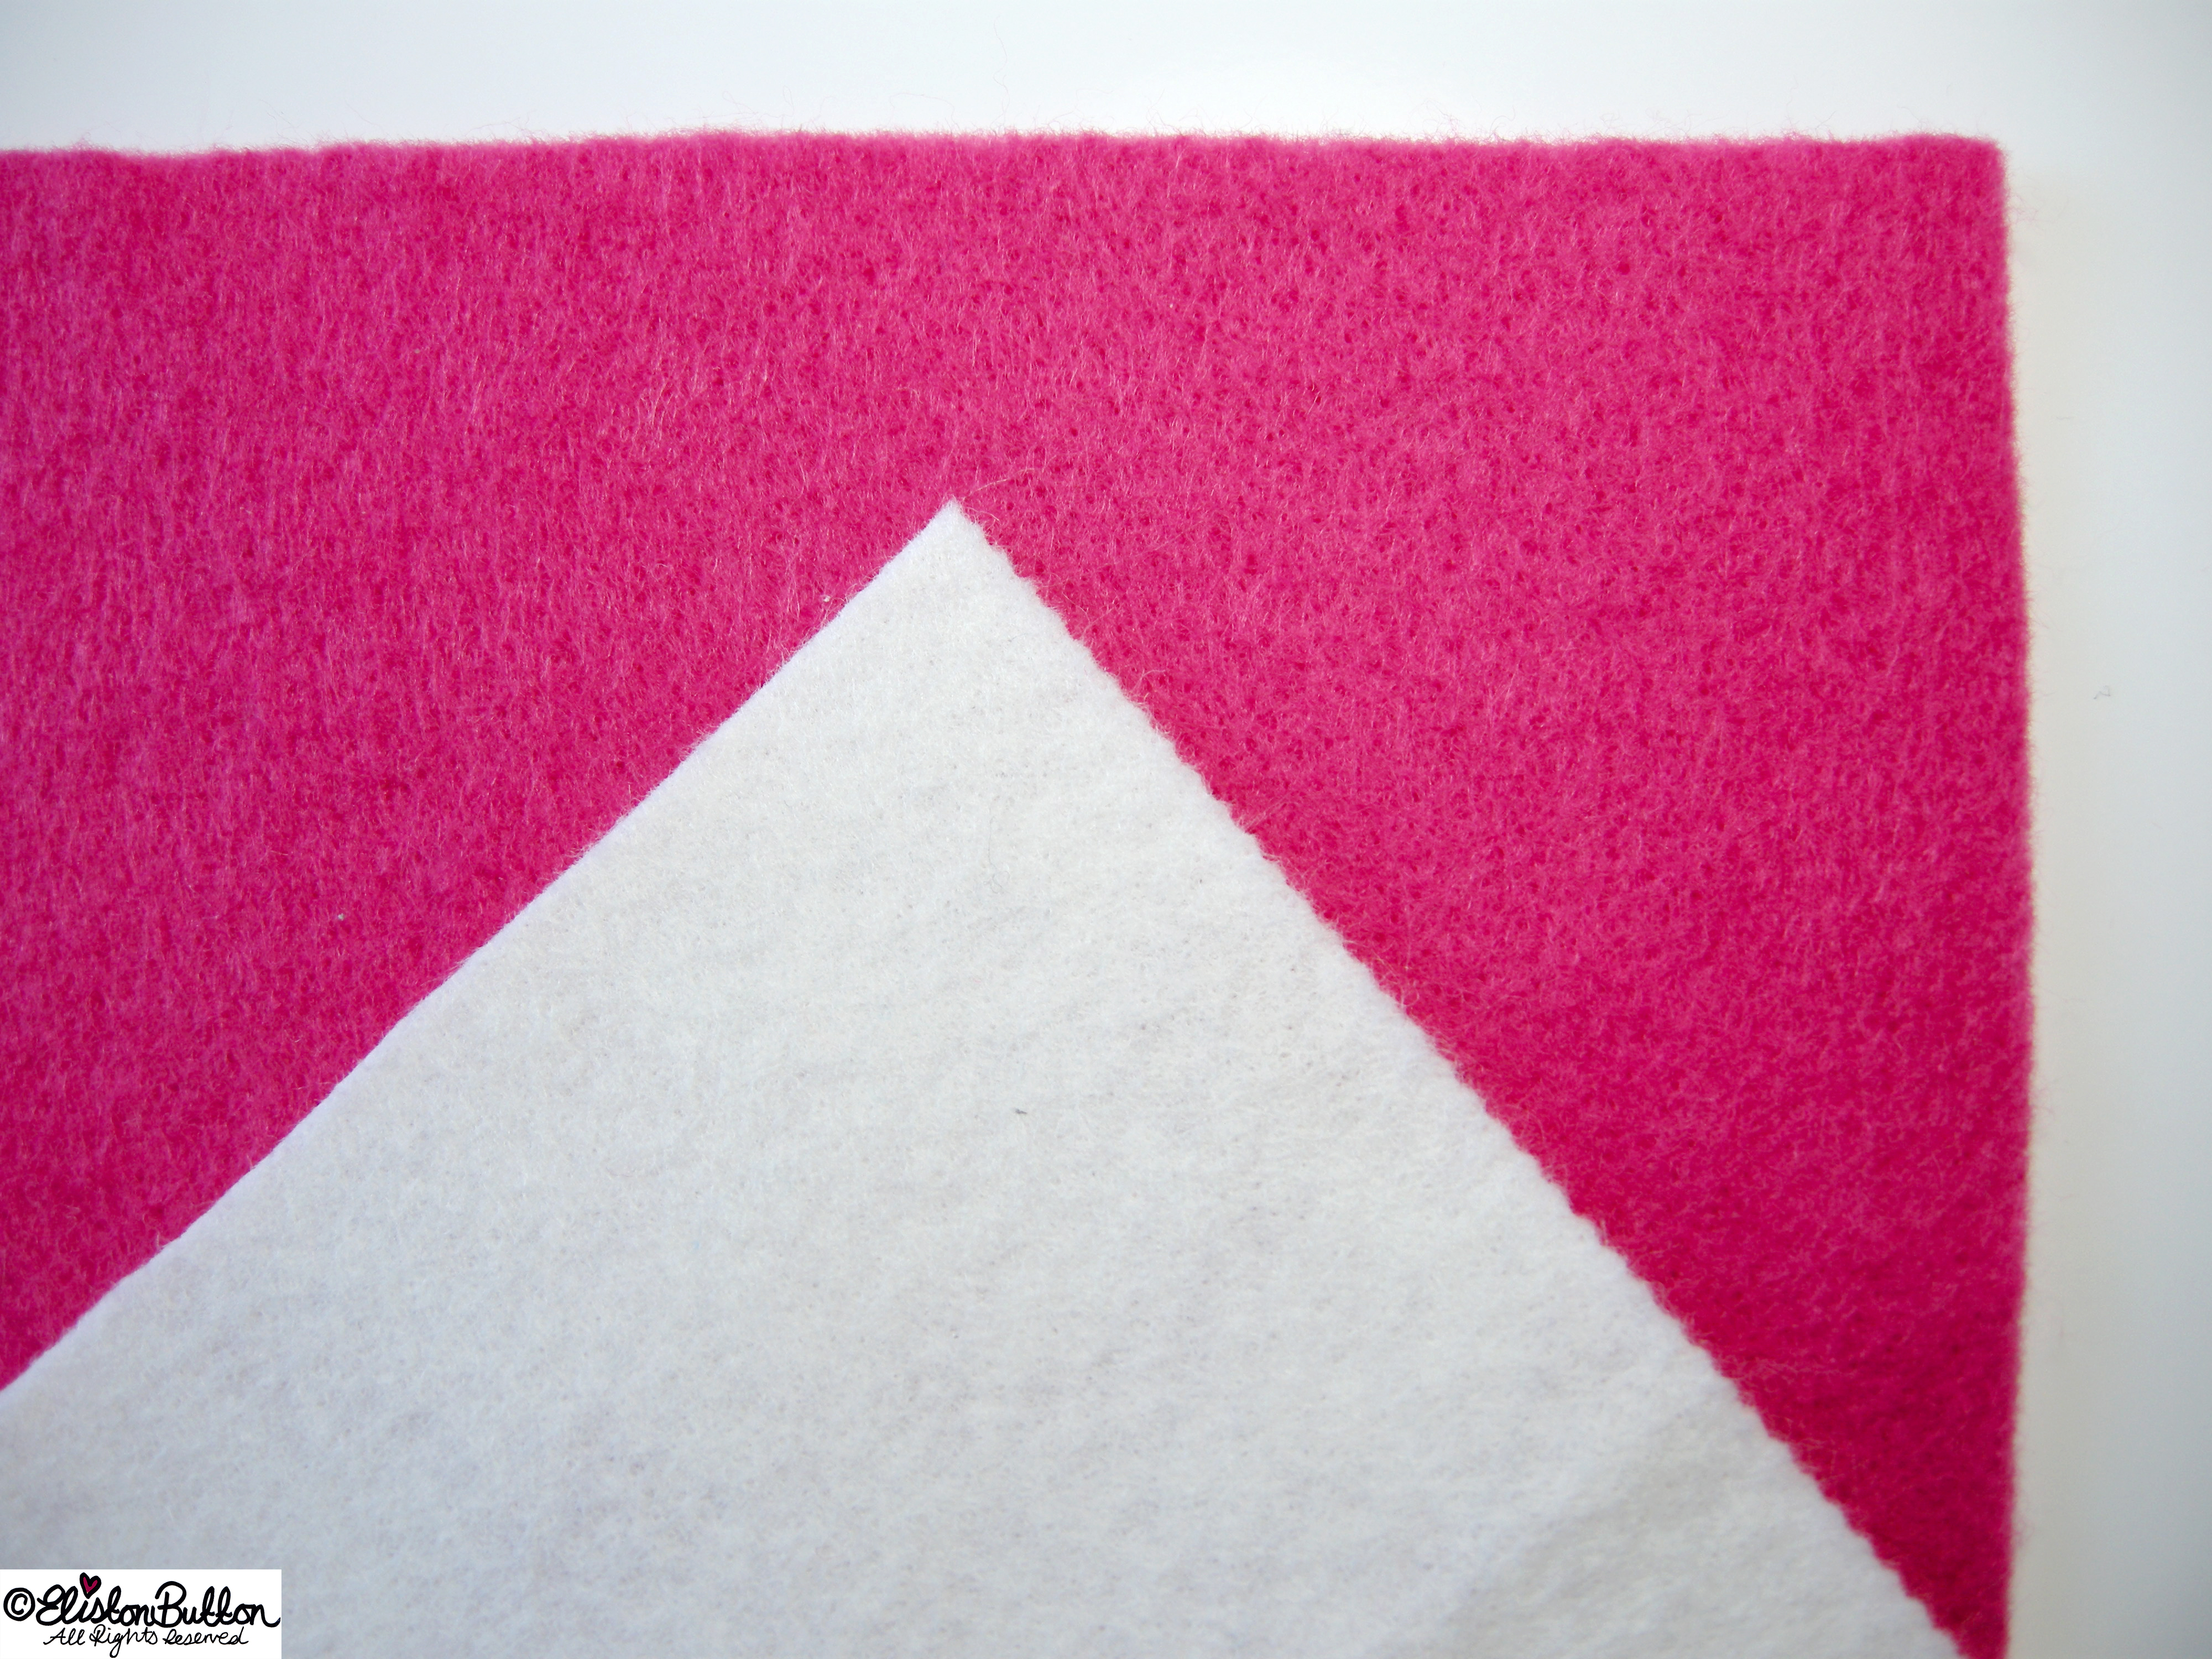 Hot Pink and Crisp White Felt Squares - 27 Before 27 - Zig-a-Zig-ah! at www.elistonbutton.com - Eliston Button - That Crafty Kid – Art, Design, Craft & Adventure.